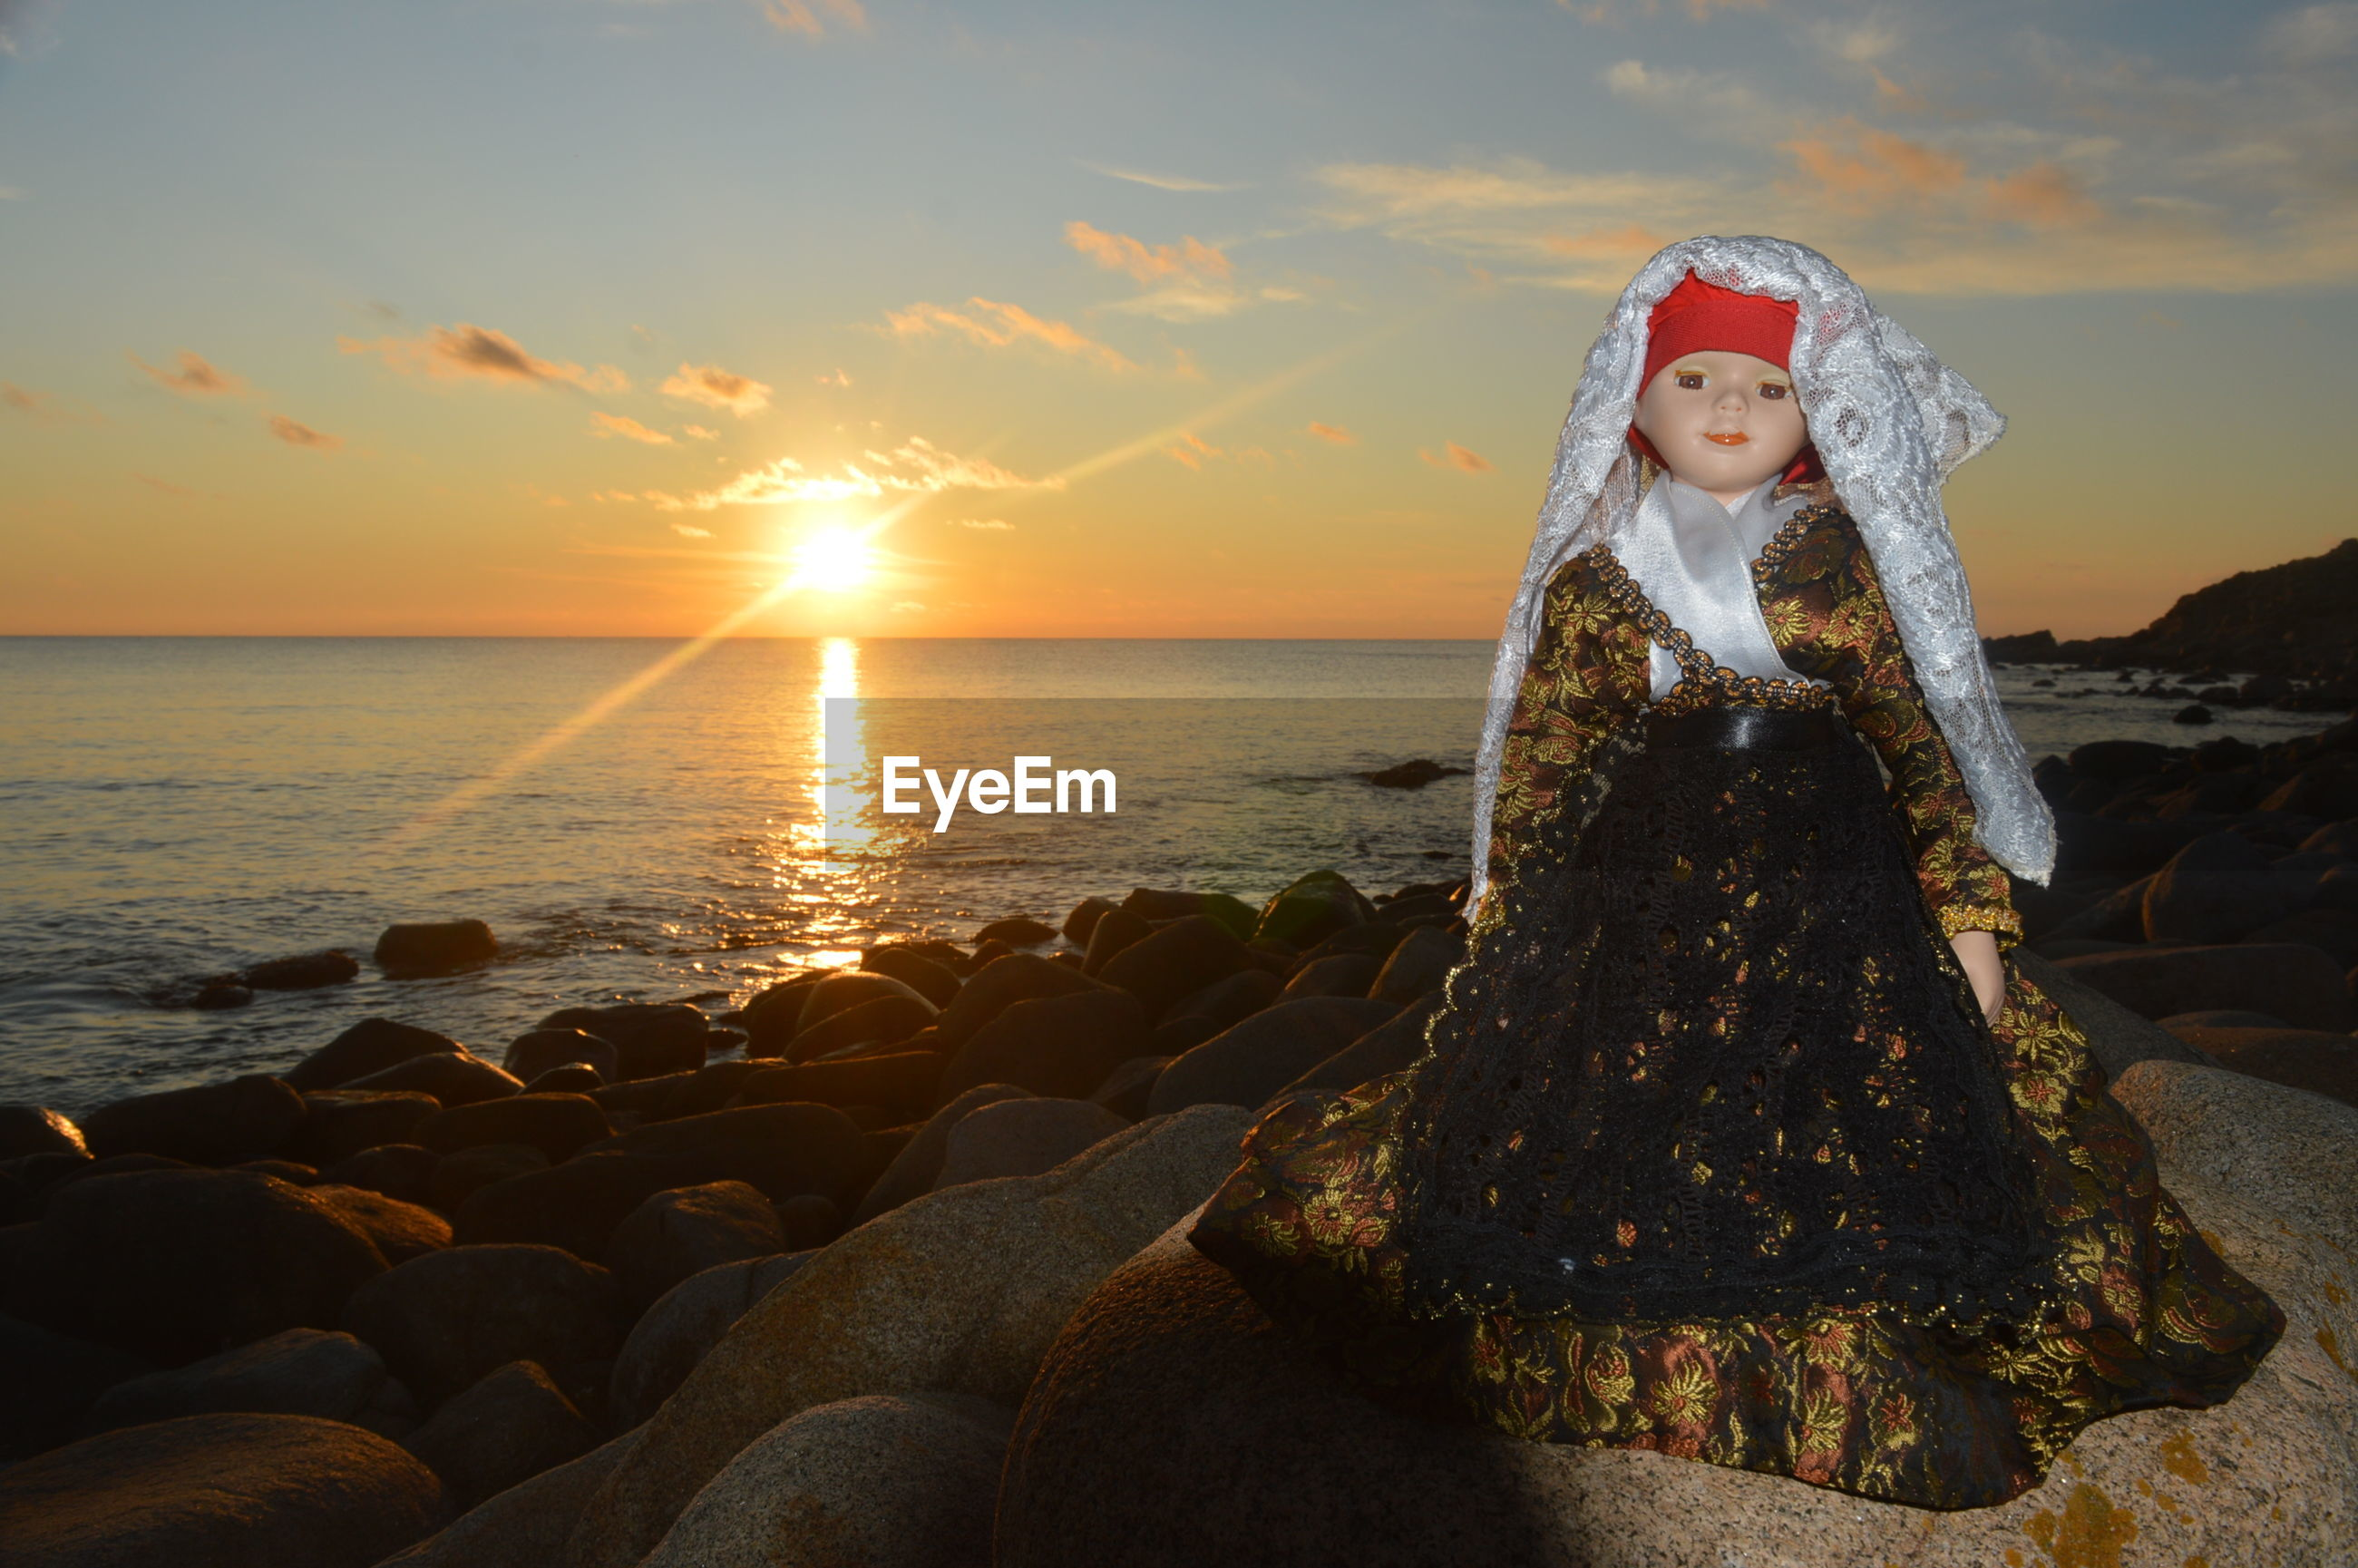 Doll on rock against sea during sunset